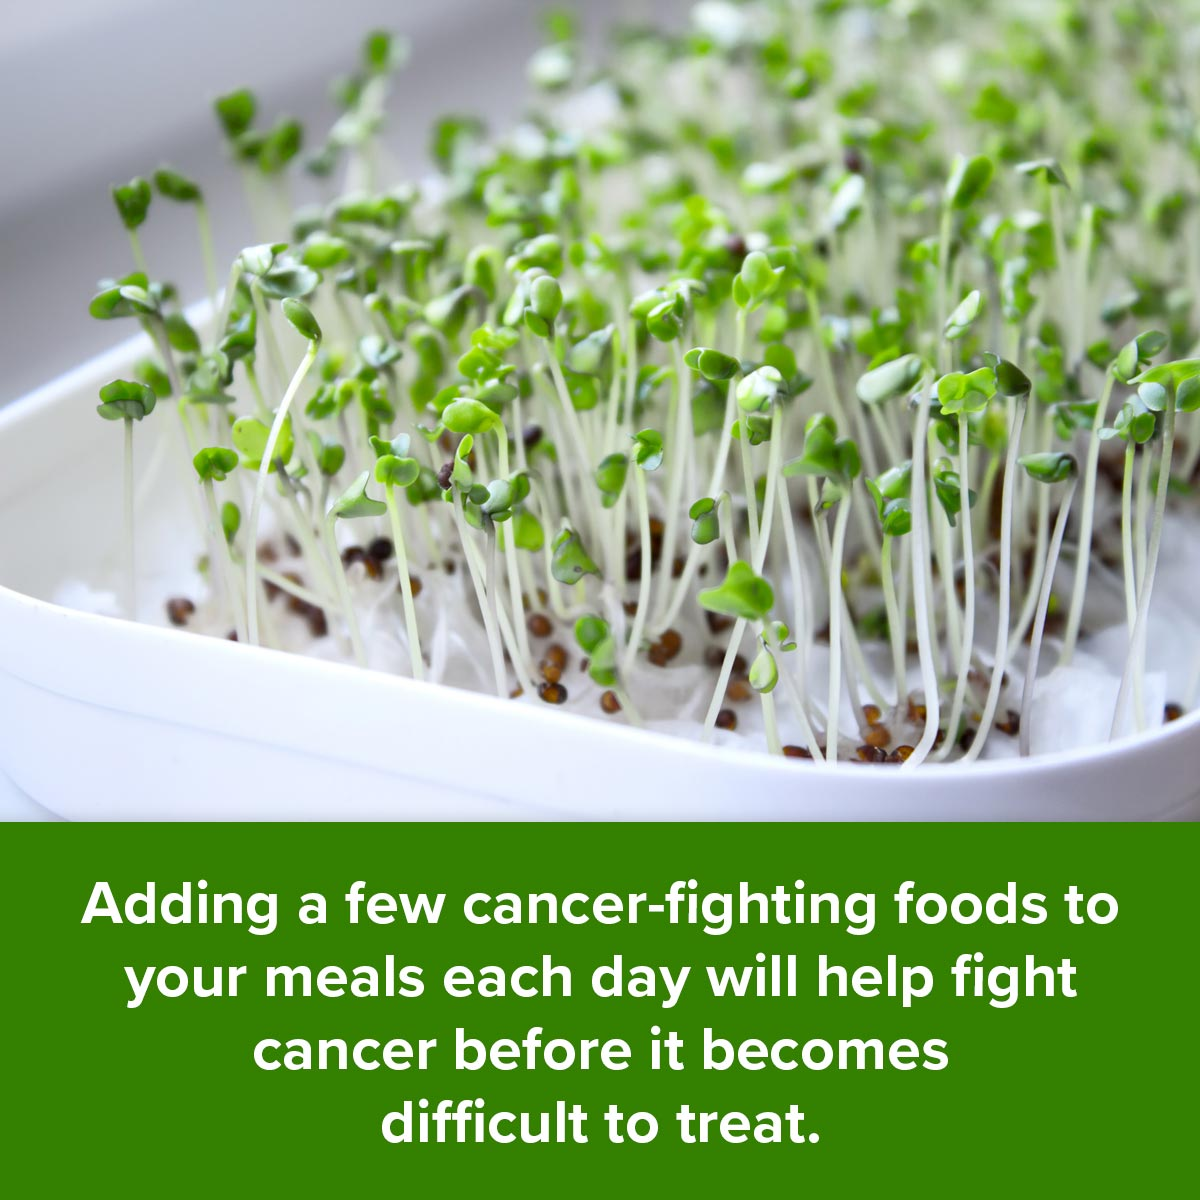 Adding a few cancer-fighting foods to your meals each day will help fight cancer before it becomes difficult to treat.